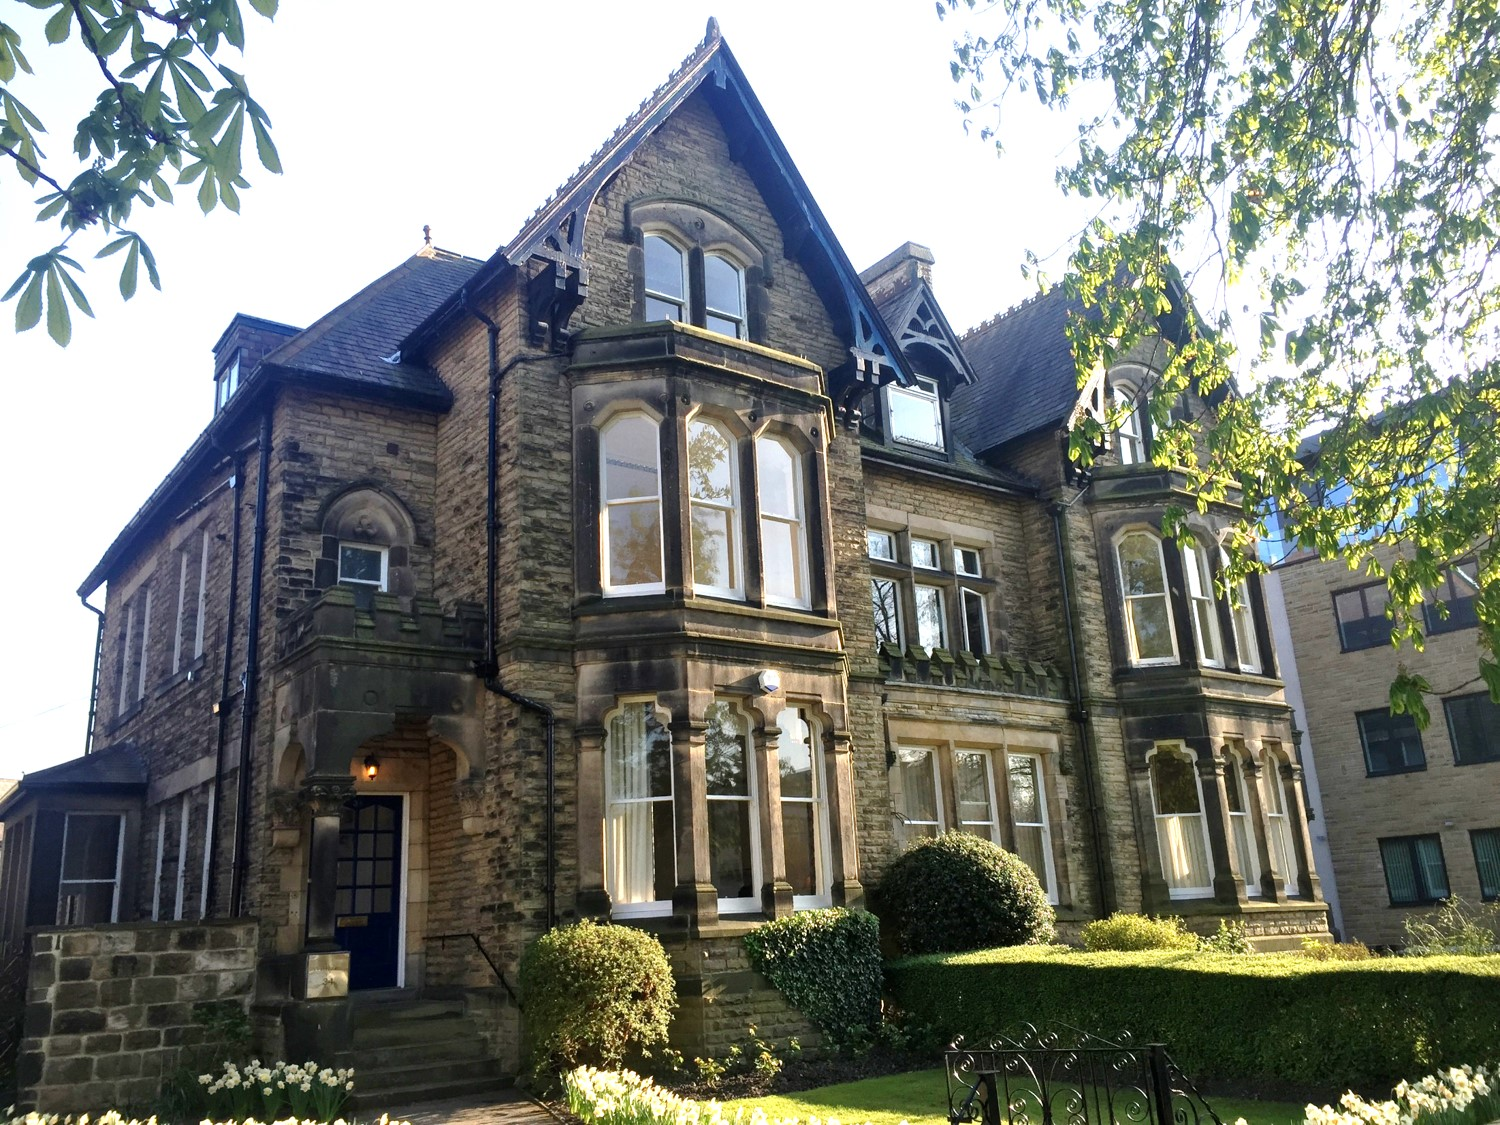 Wilson Bramwell Solicitors of Harrogate offices